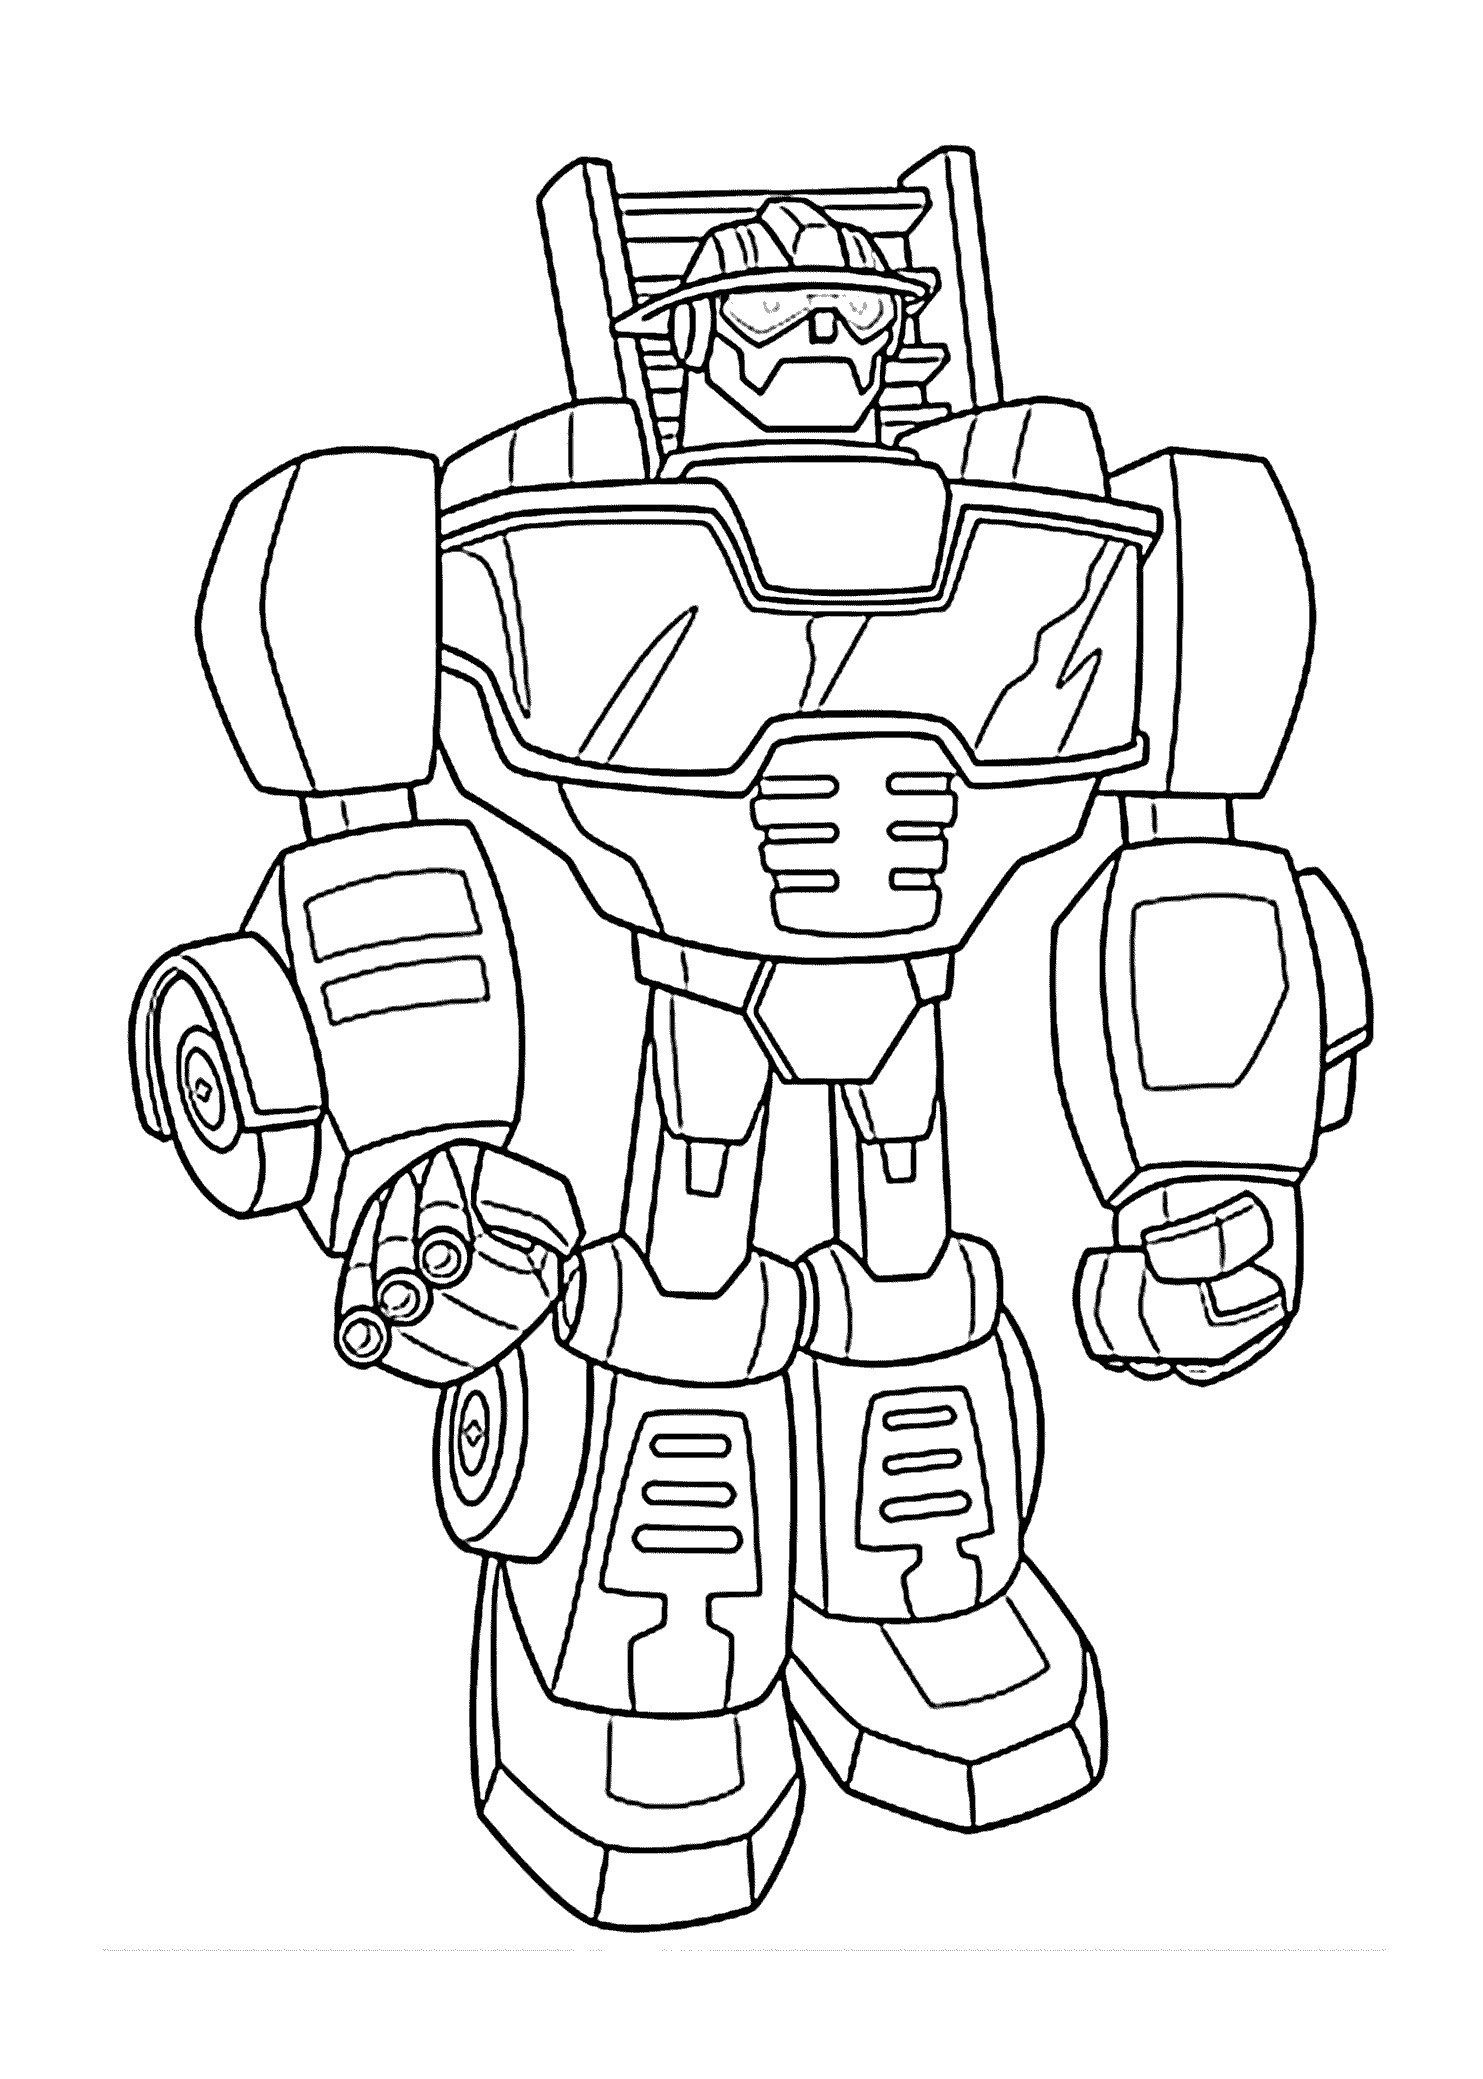 22 Brilliant Image Of Rescue Bots Coloring Pages Davemelillo Com Transformers Coloring Pages Rescue Bots Birthday Party Bee Coloring Pages